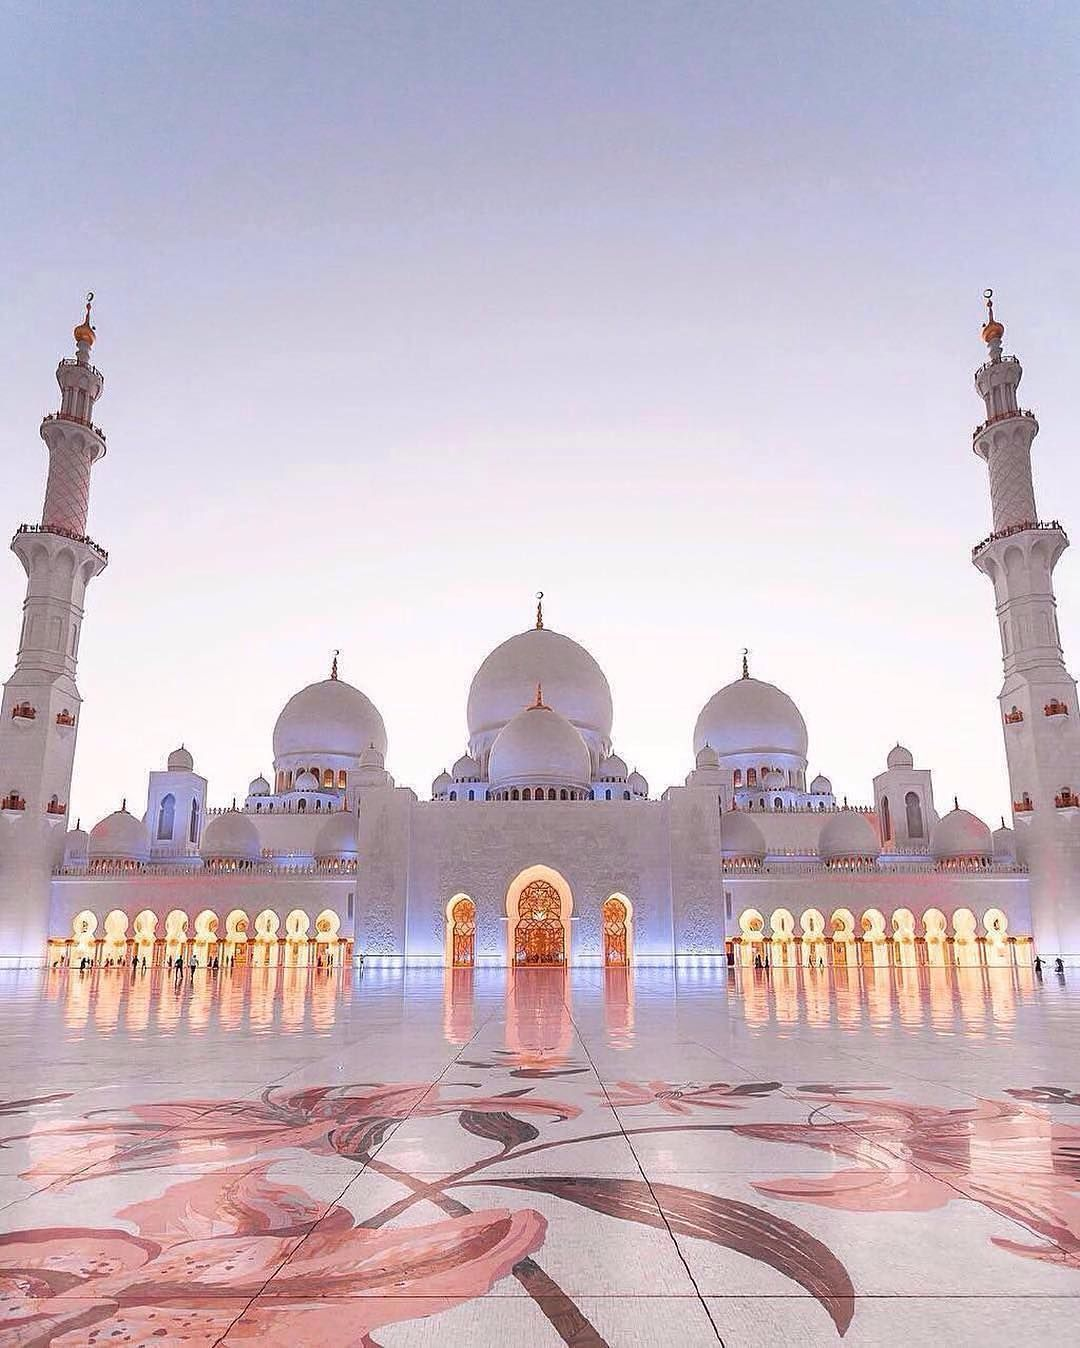 Sheikh Zayed Mosque Mosque Architecture Grand Mosque Mosque